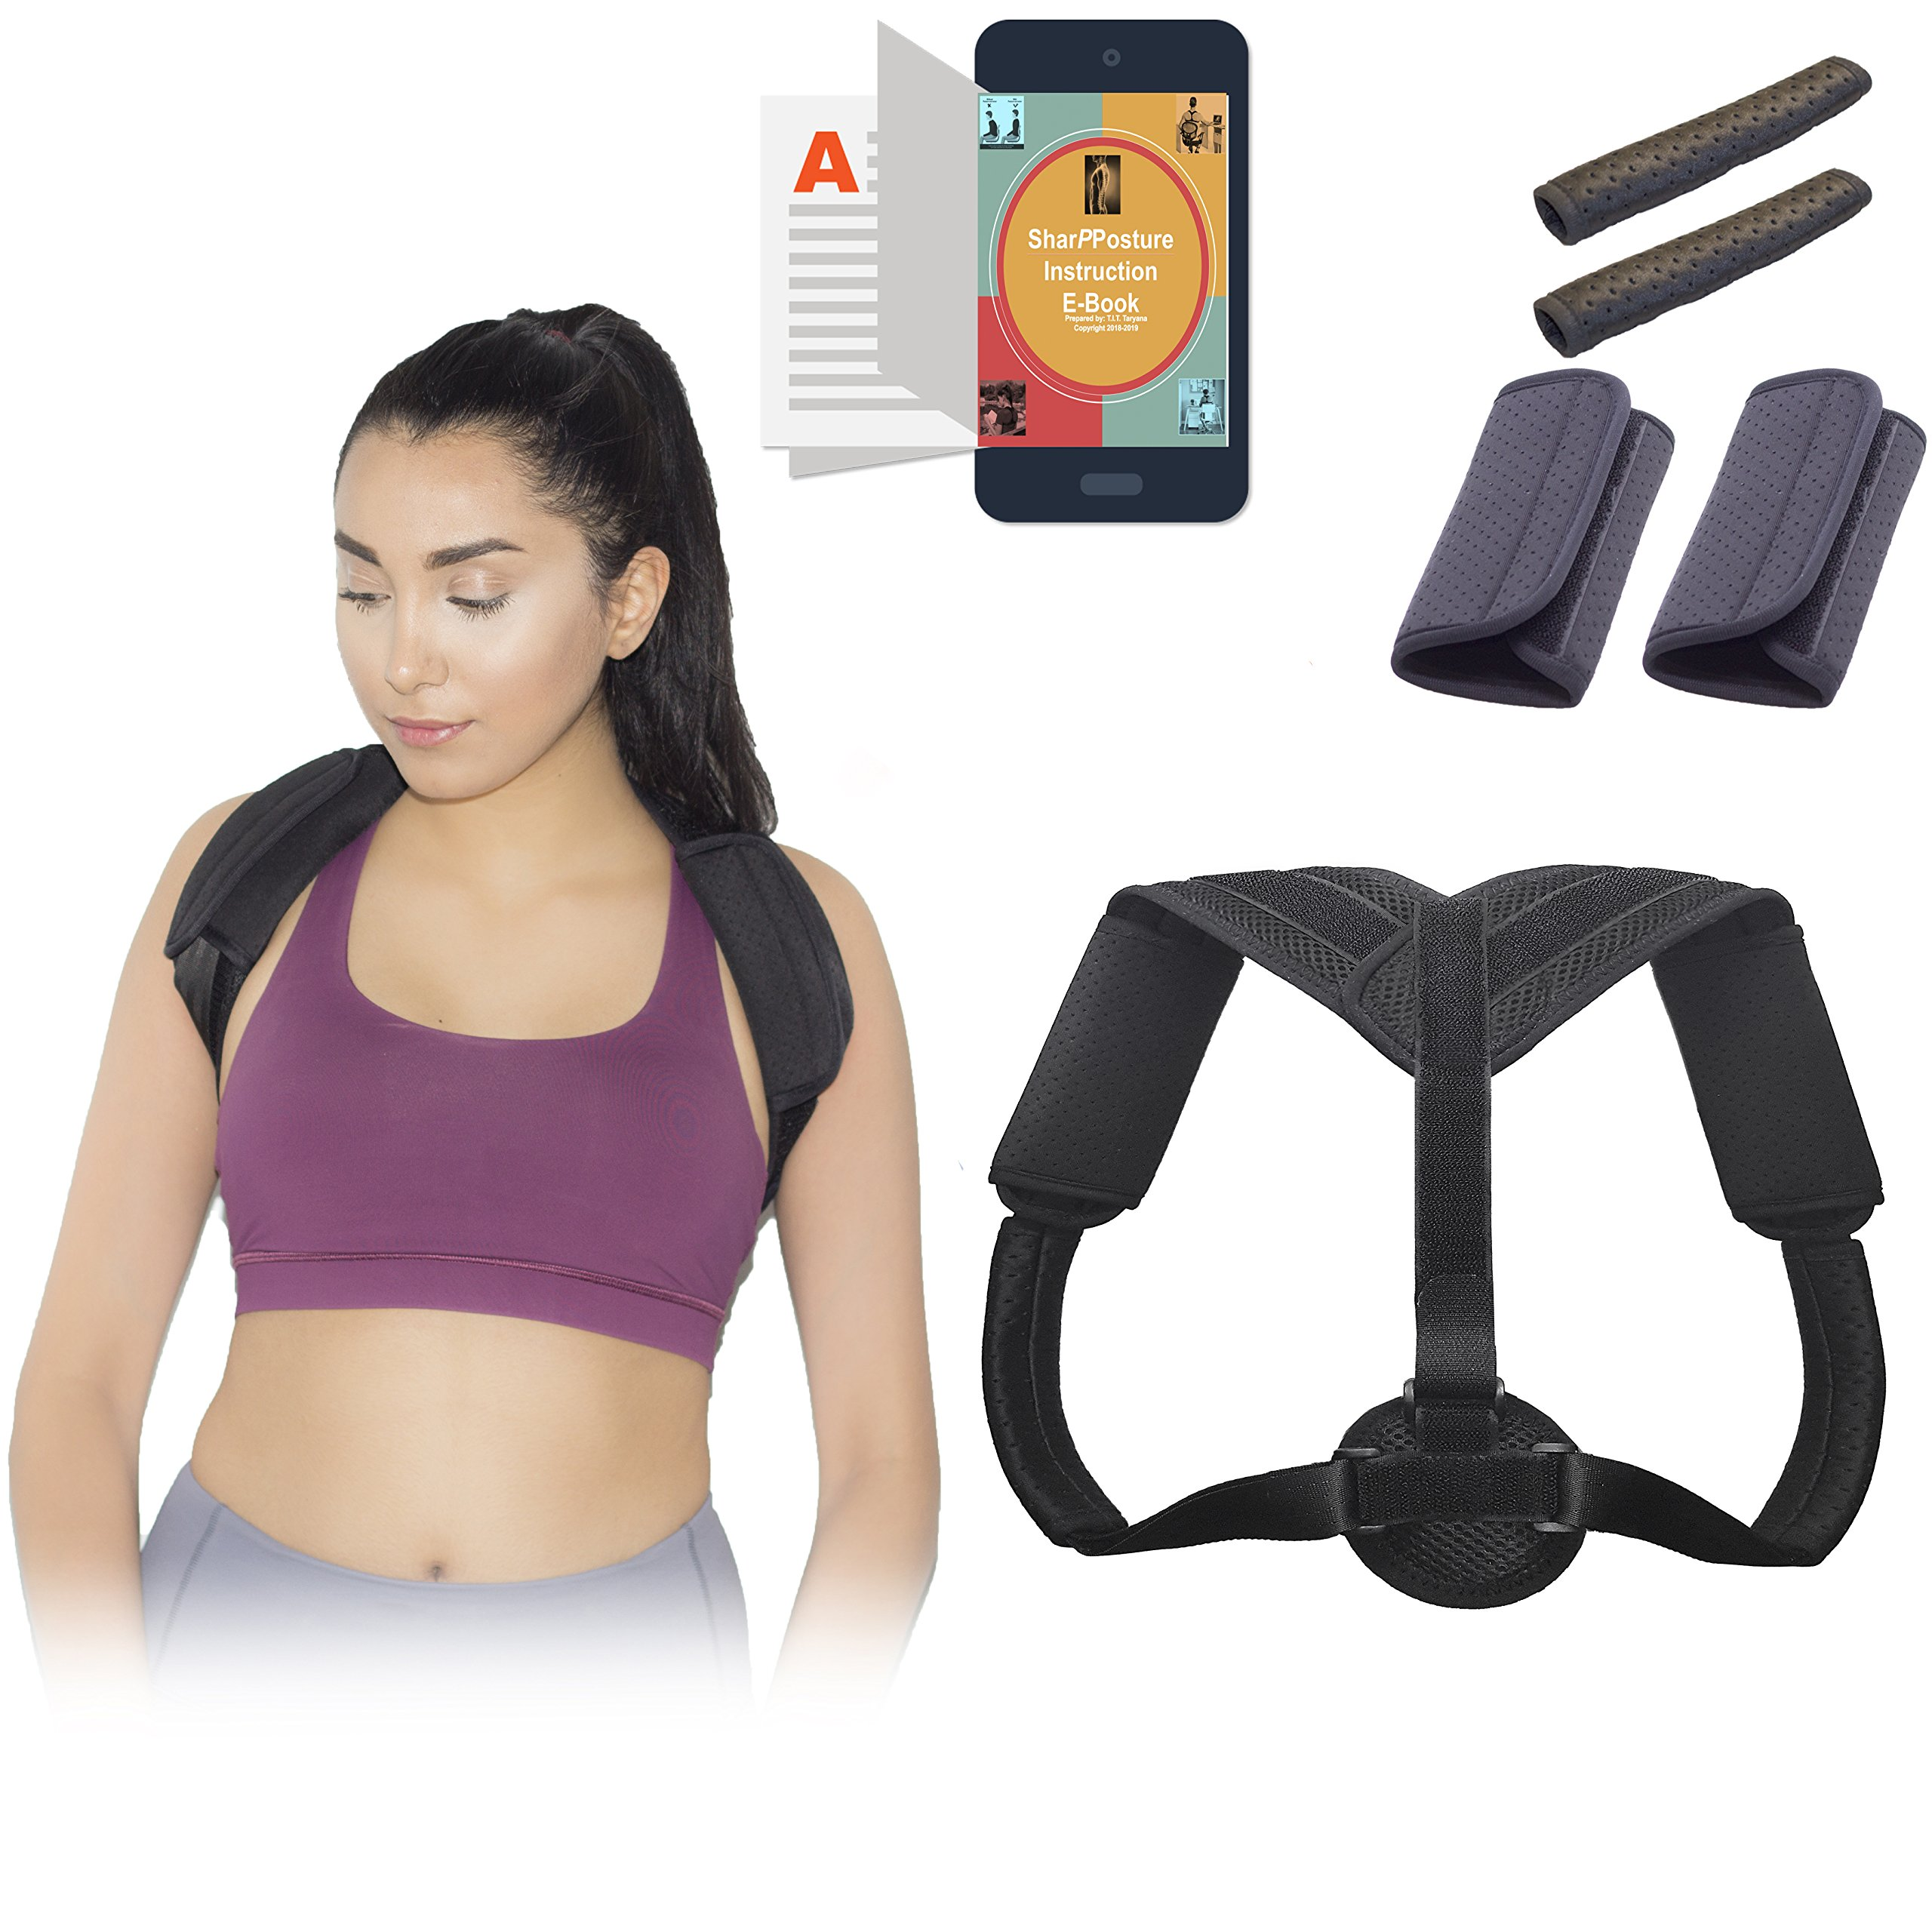 SharpPosture Adjustable Posture Corrector for Women and Men, Upper Back and Shoulder Brace for Clavicle Support, Slouching, and Hunching, Comes with 4 Extra Pads and E-Book, Comfortable and Breathable by SharpPosture